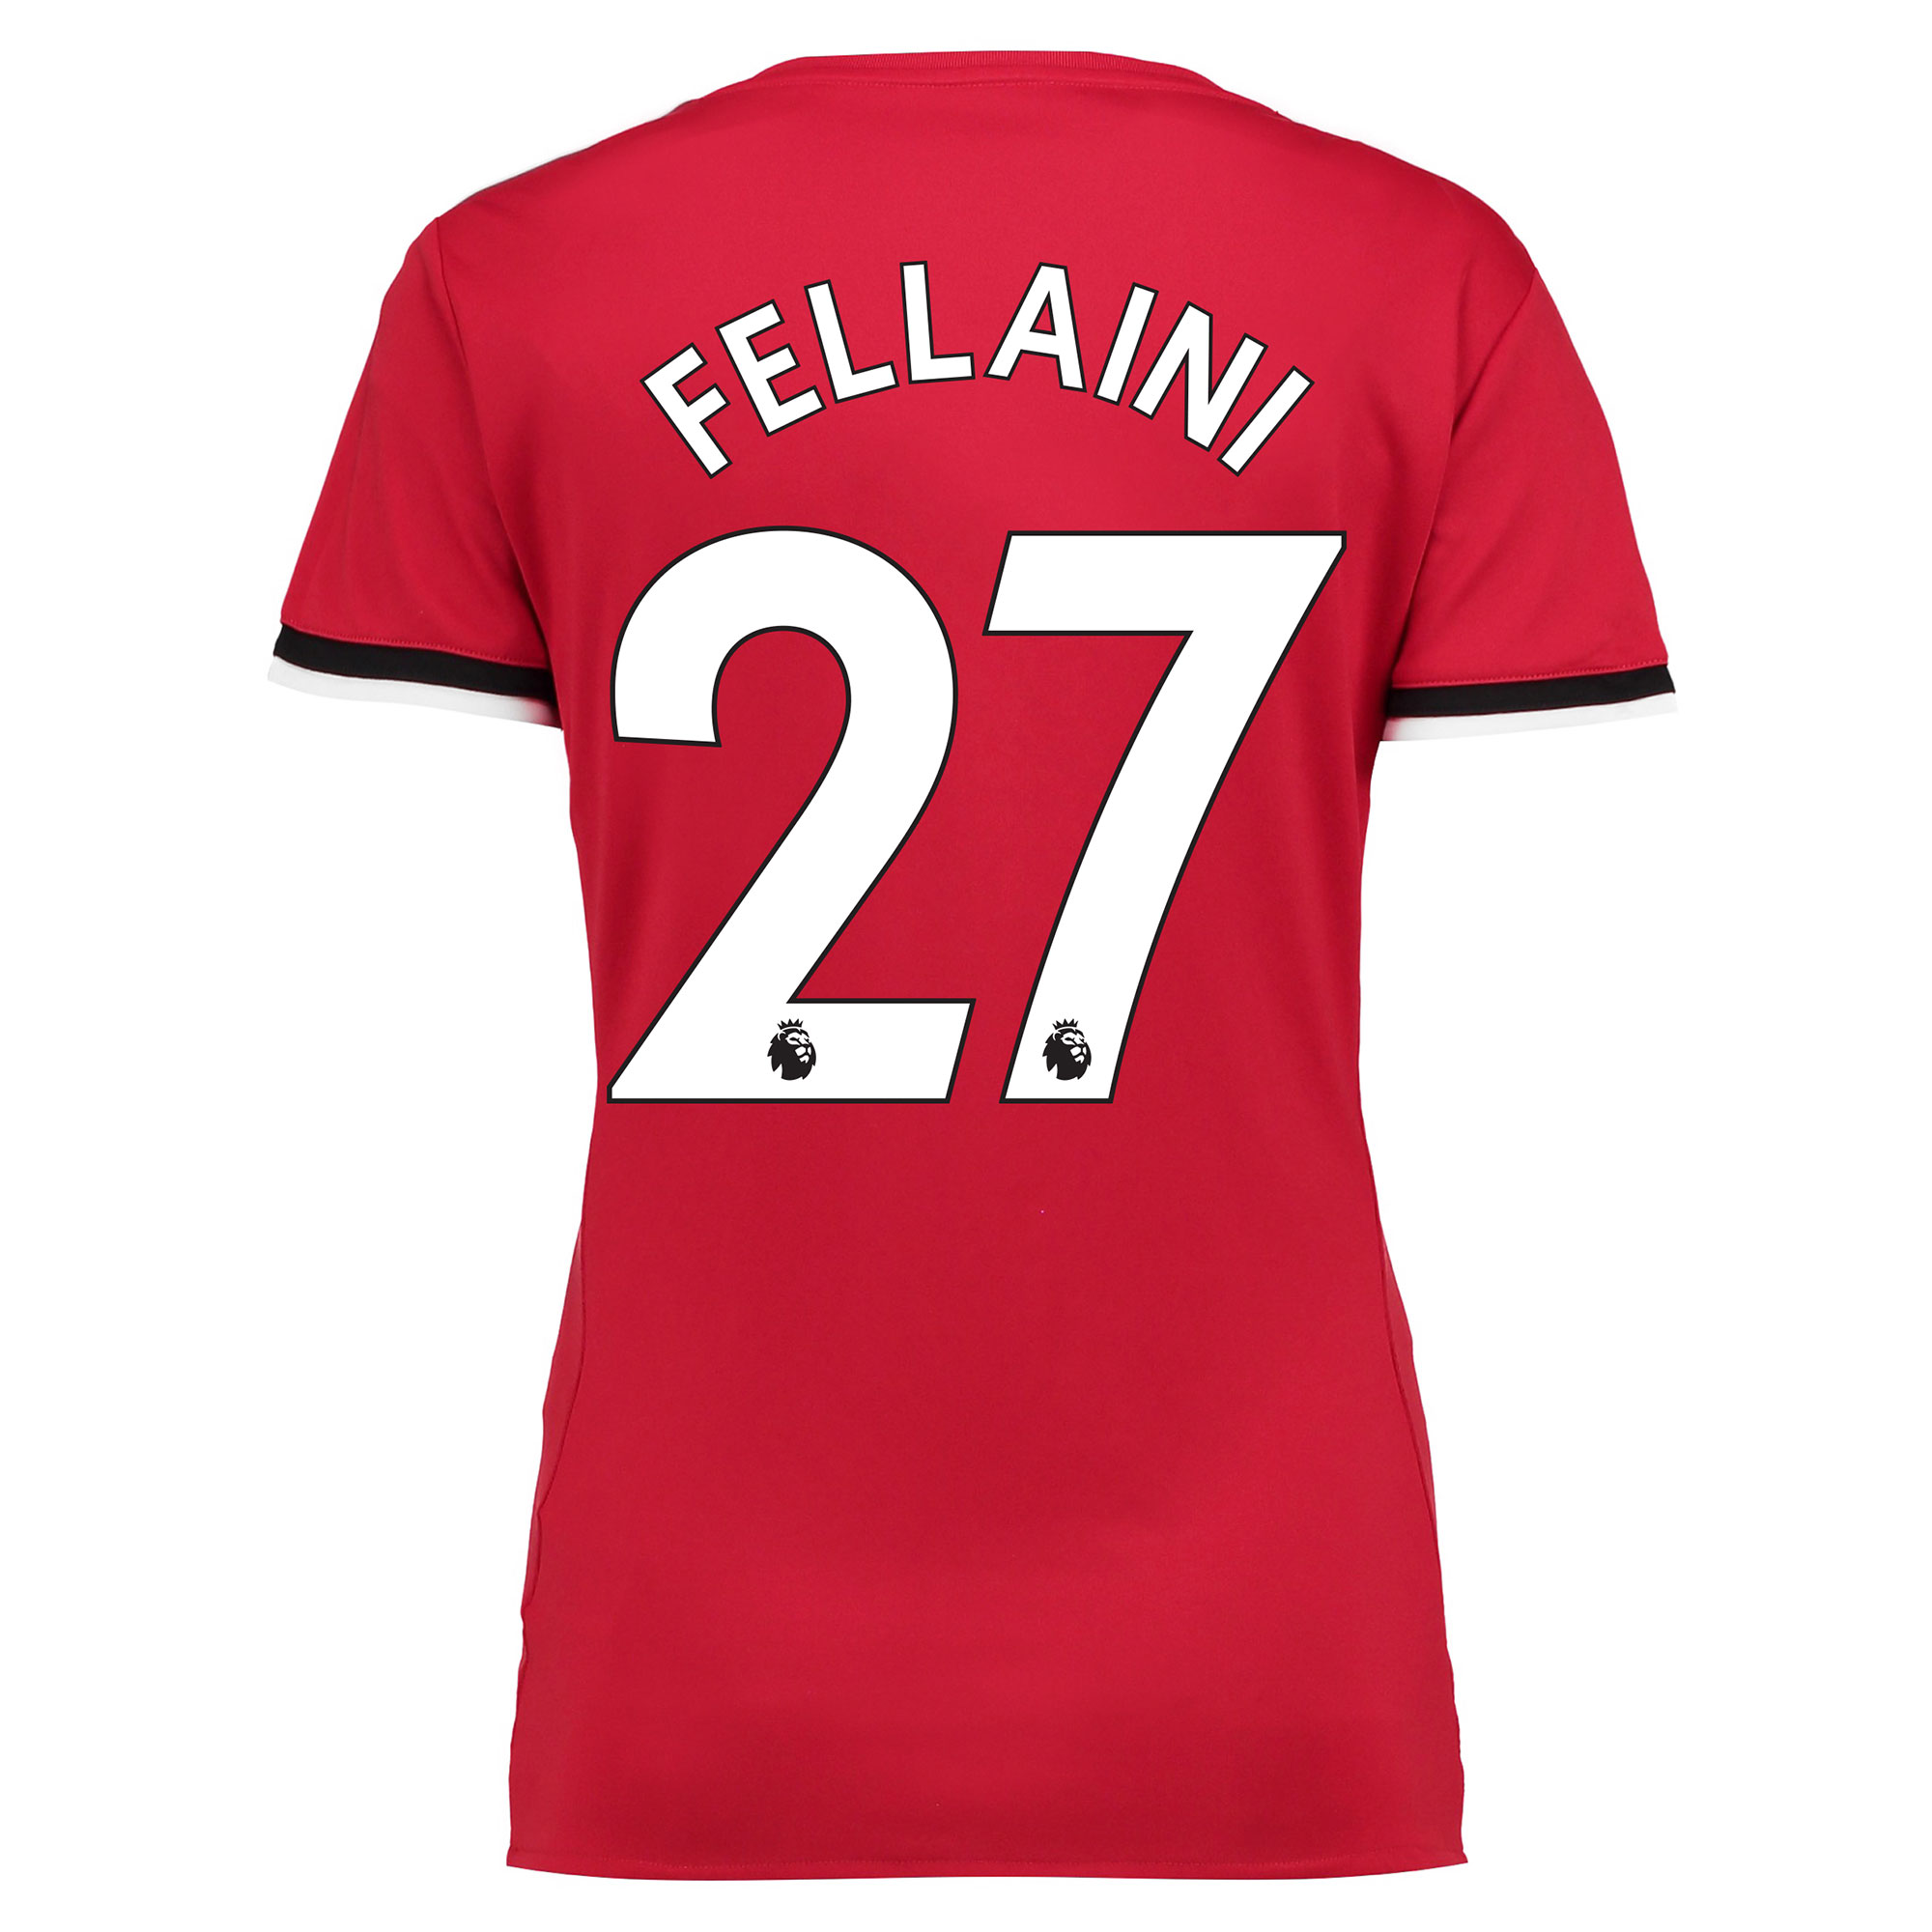 Manchester United Home Shirt 2017-18 - Womens with Fellaini 27 printin